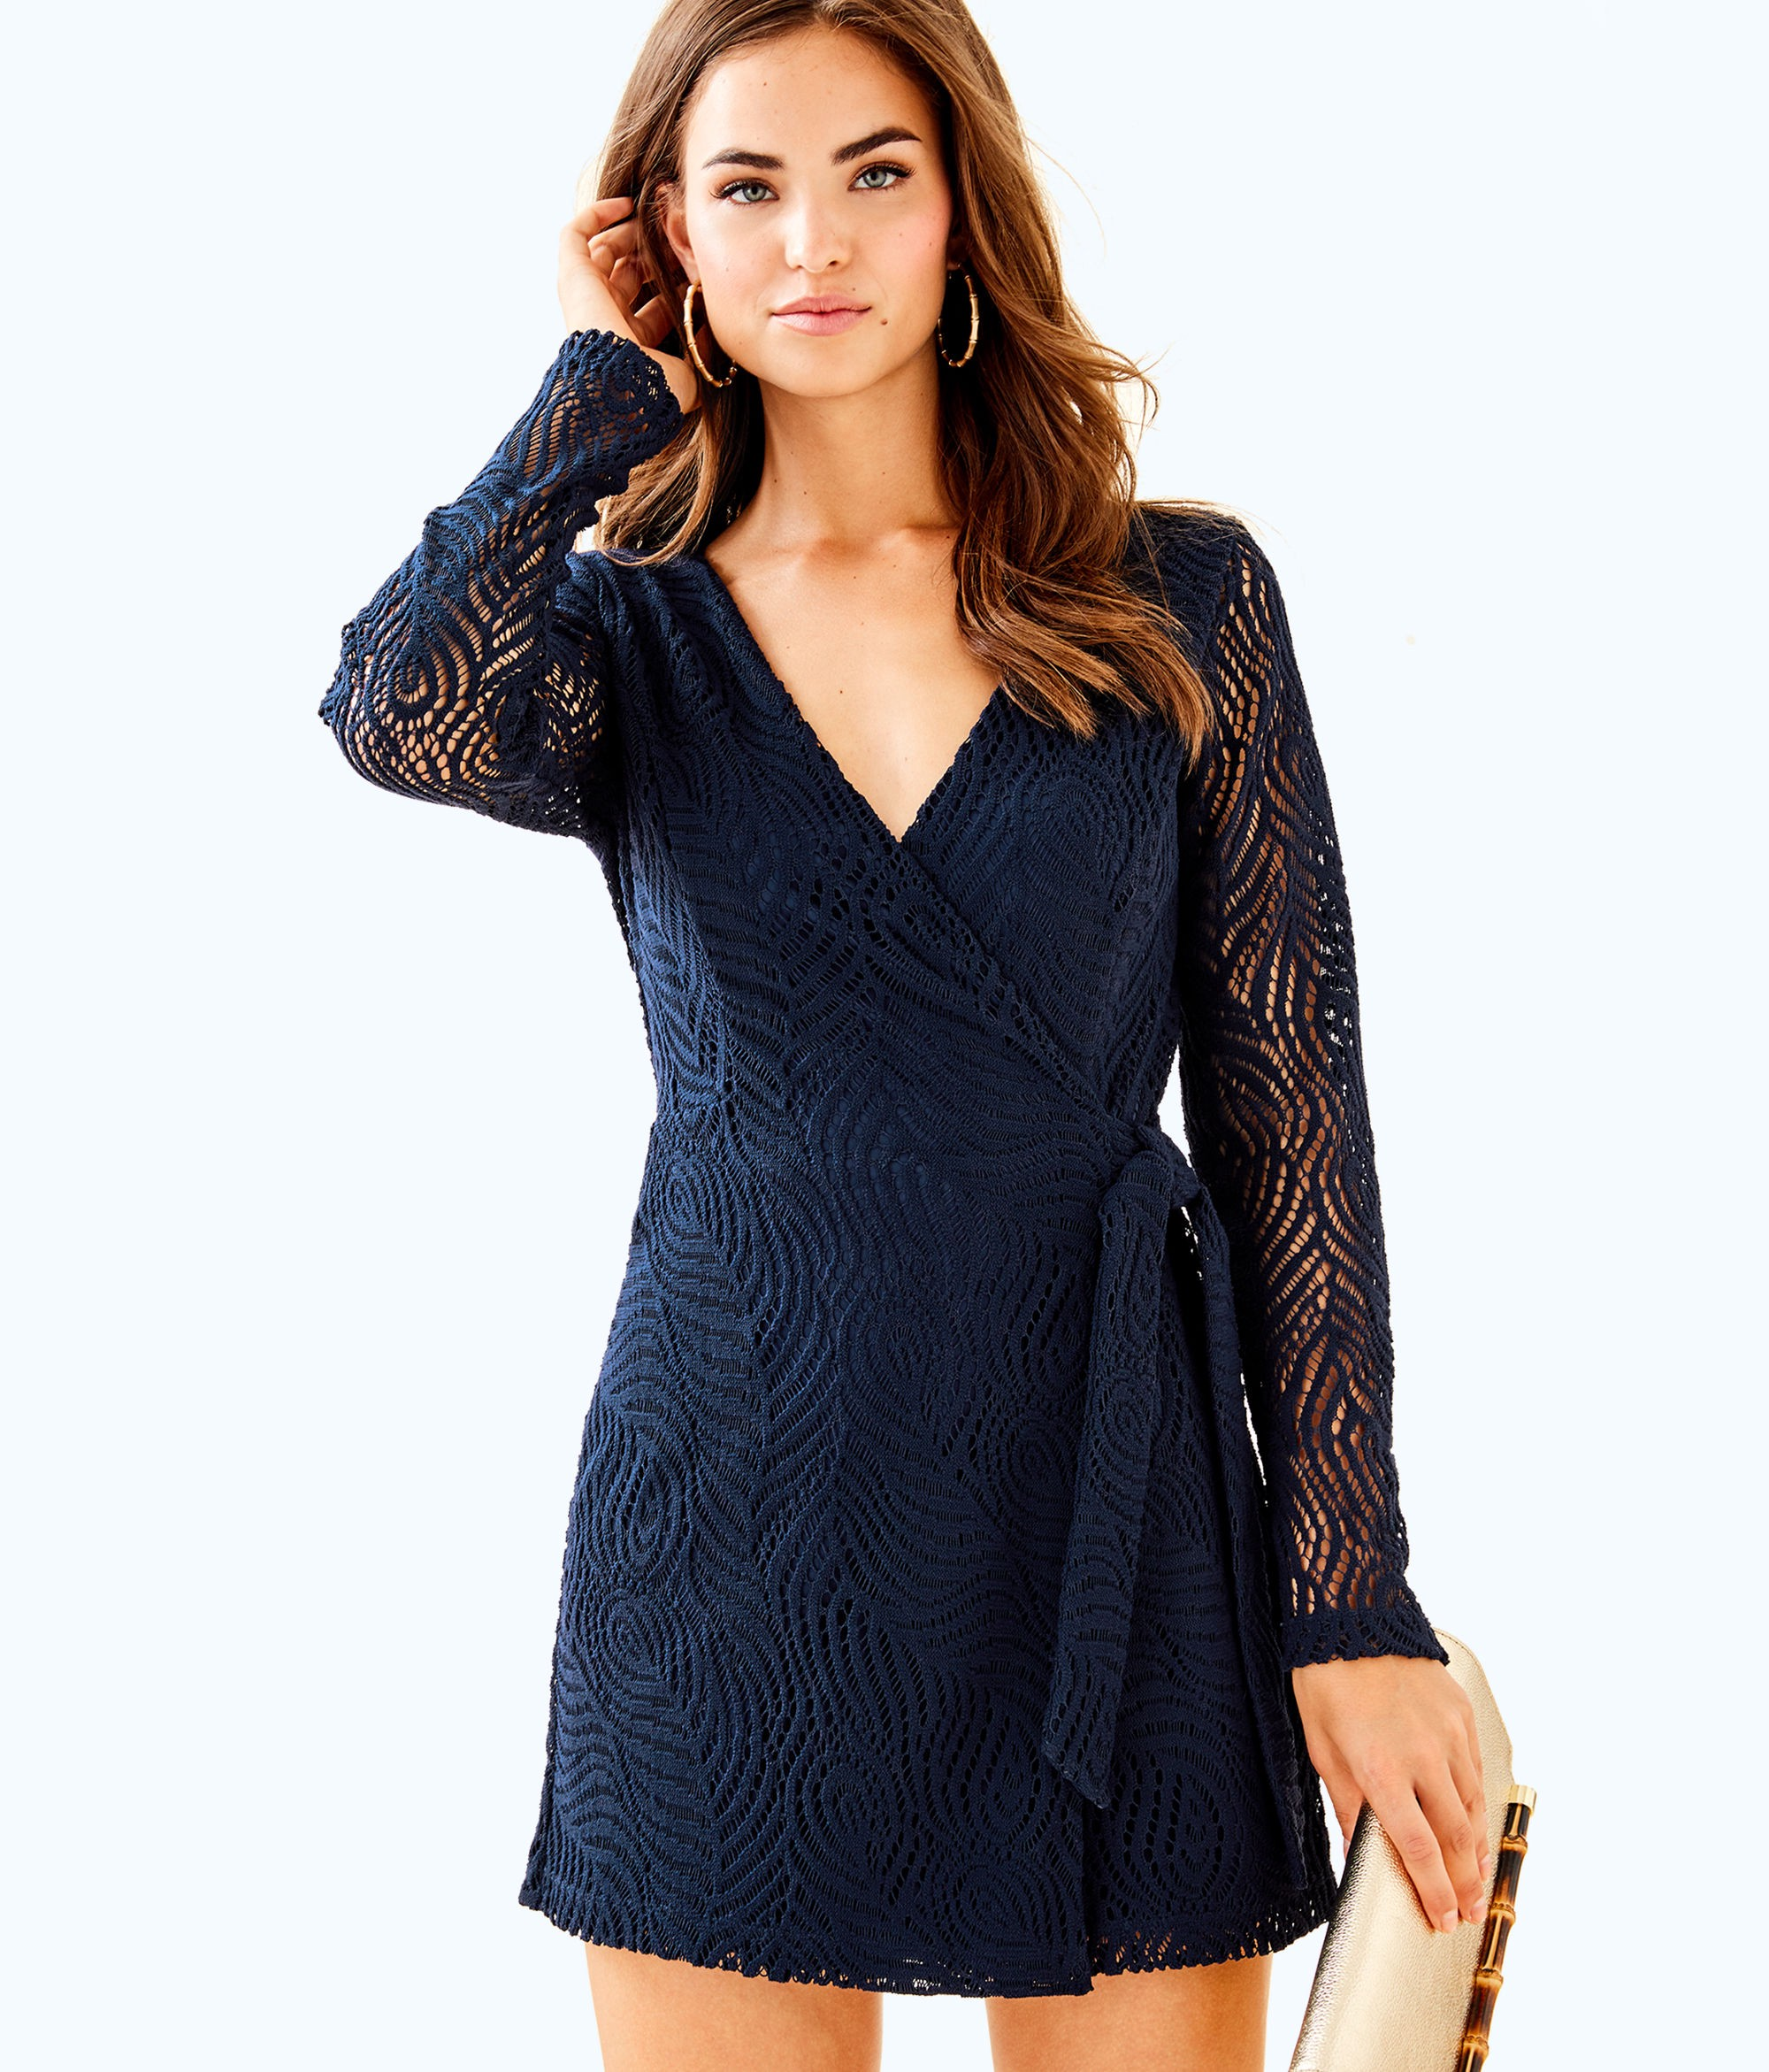 e2ea6bb5c1 Lilly Pulitzer Tiki Wrap Romper - XXS Navy | Products | Rompers ...